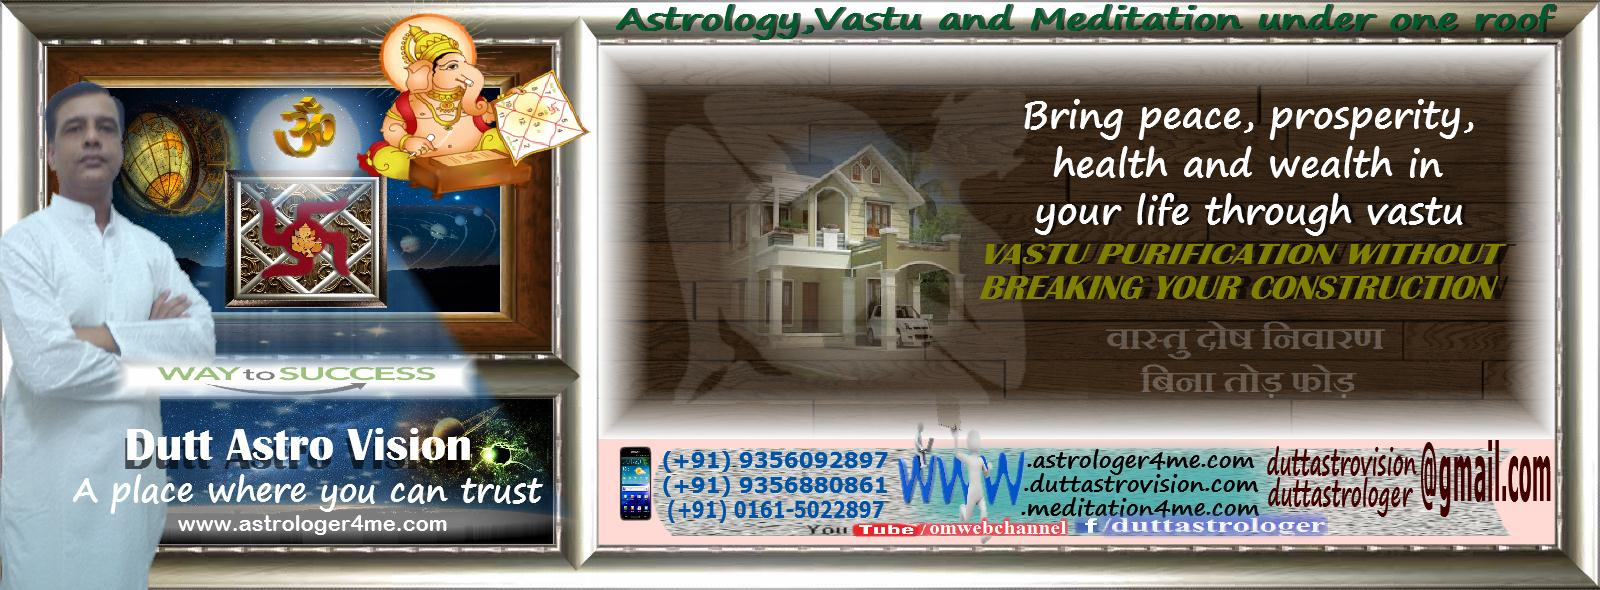 Get Vastu Consultation by Astrologer Parkash Dutt for peace, prosperity, health, and wealth in your life